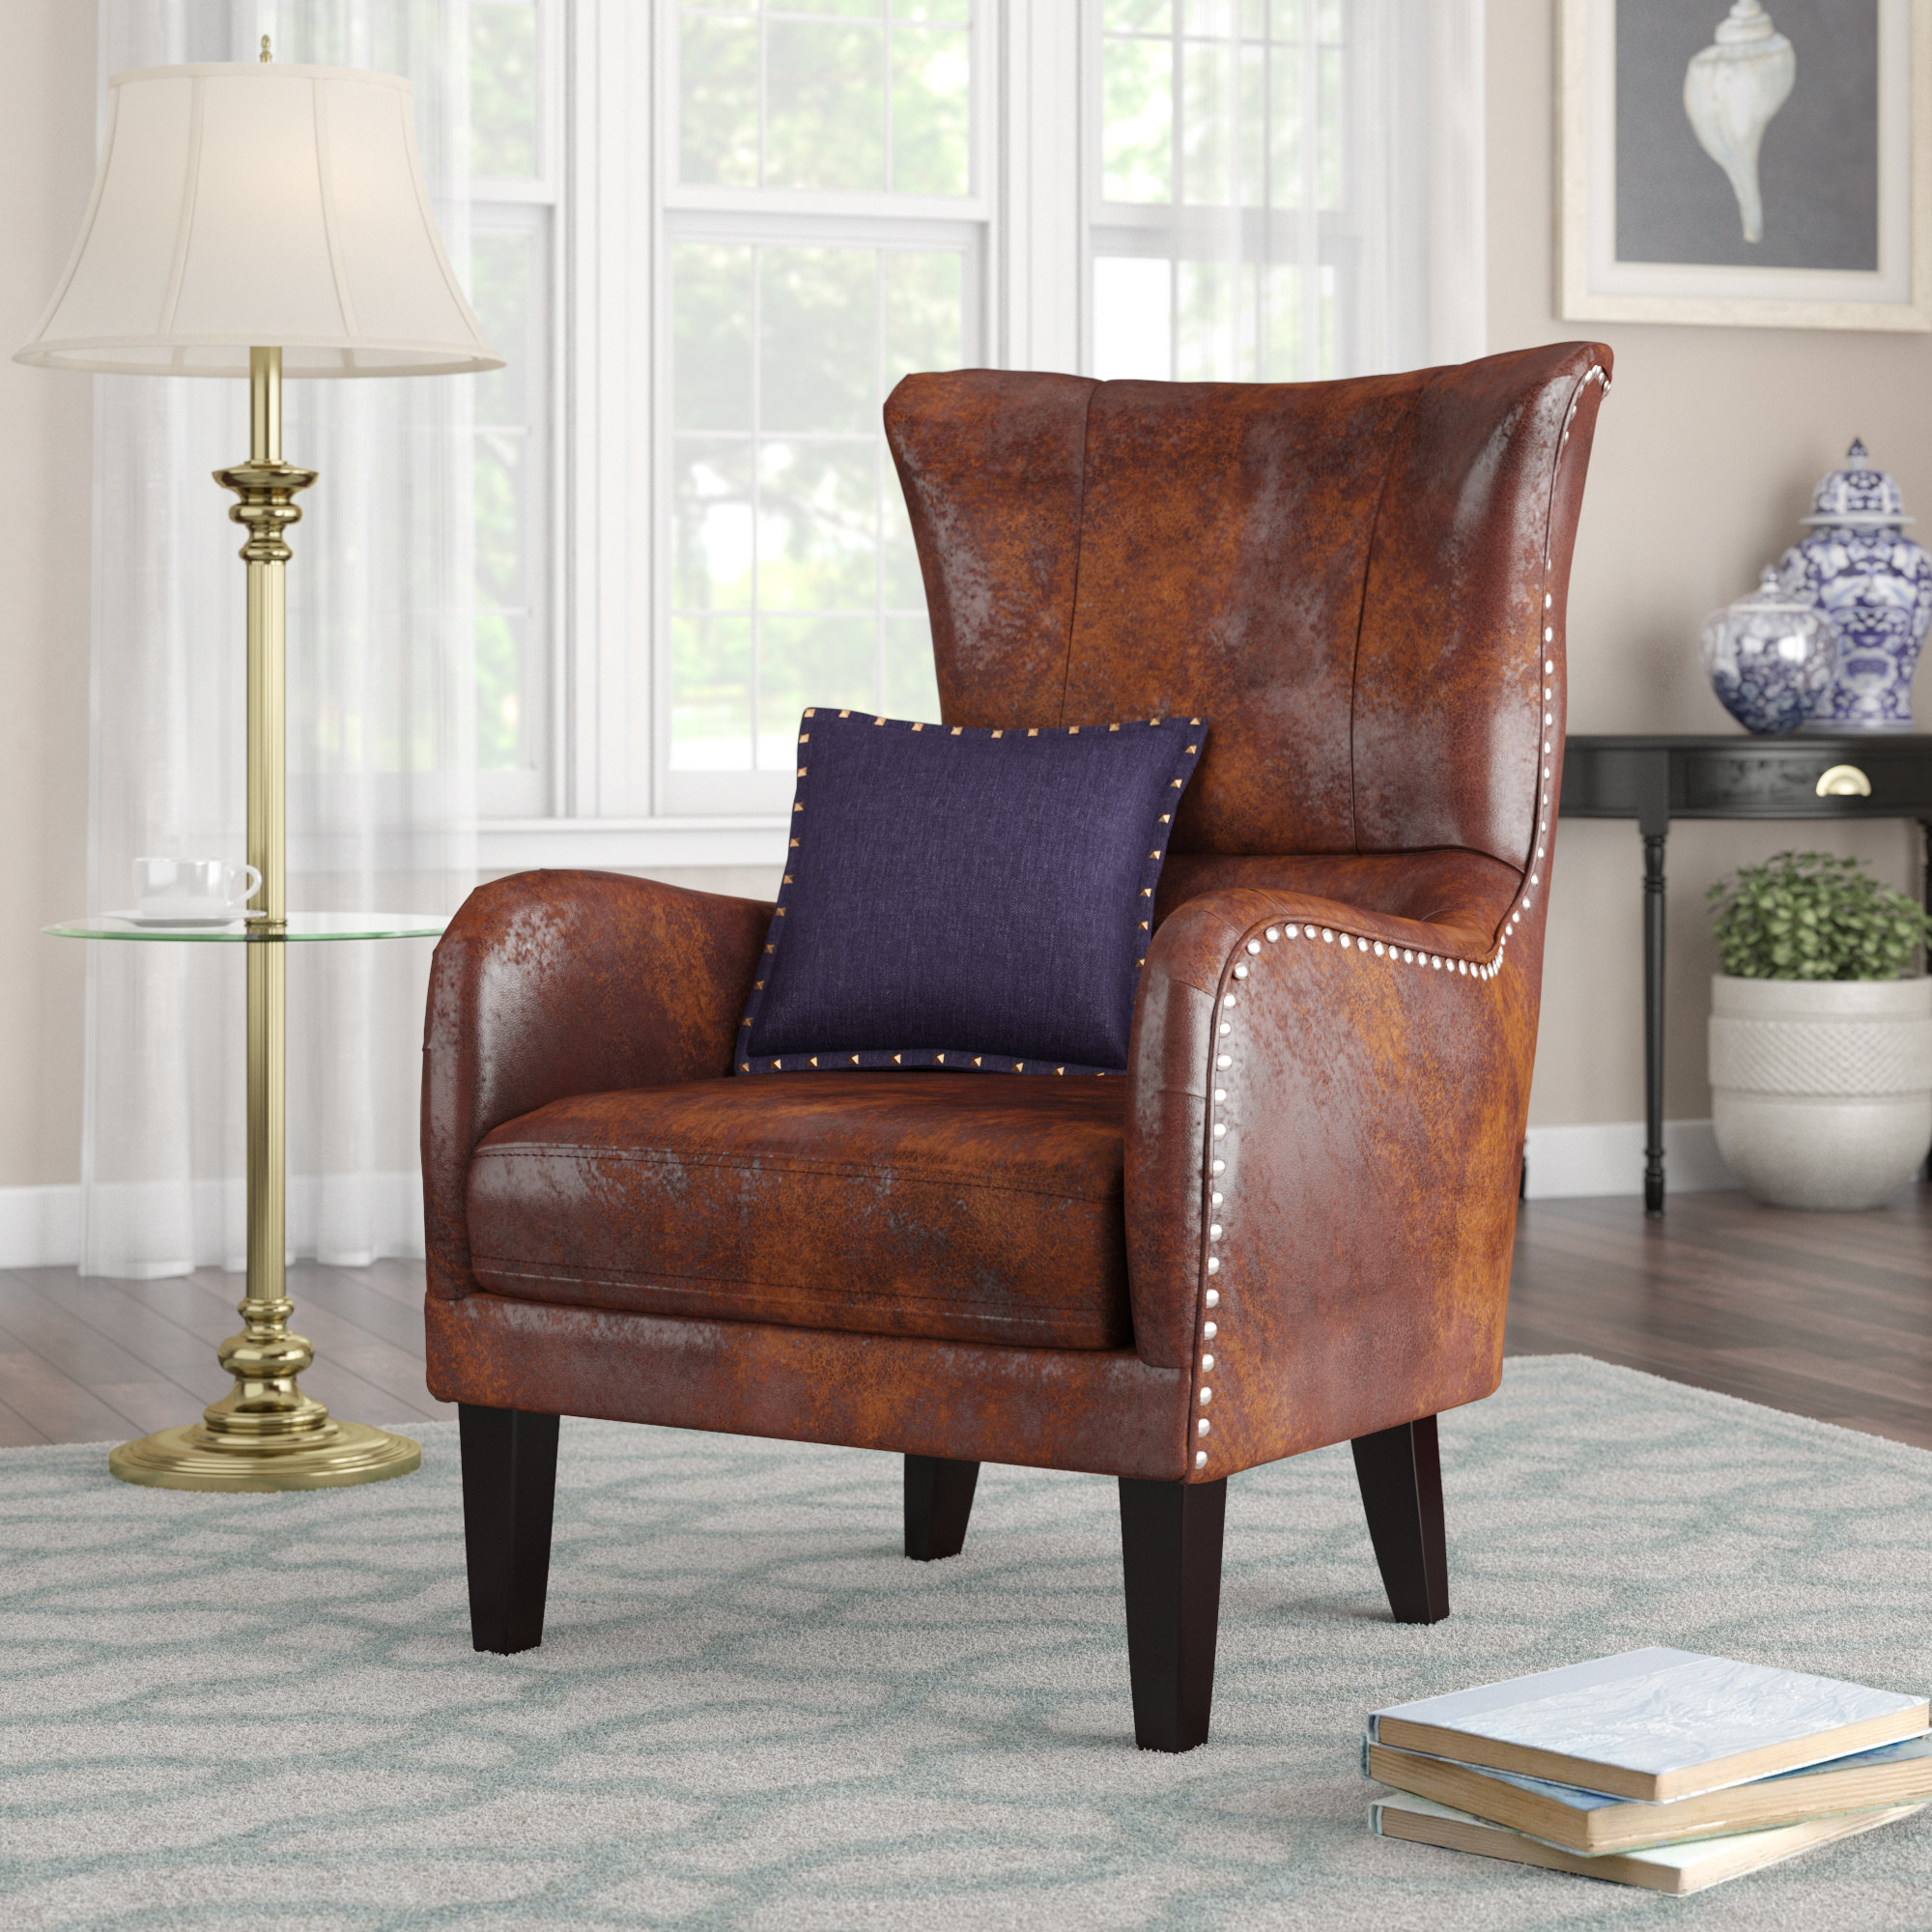 Alcott Hill Gordon Wingback Chair & Reviews | Wayfair Inside Gordon Arm Sofa Chairs (Image 1 of 20)